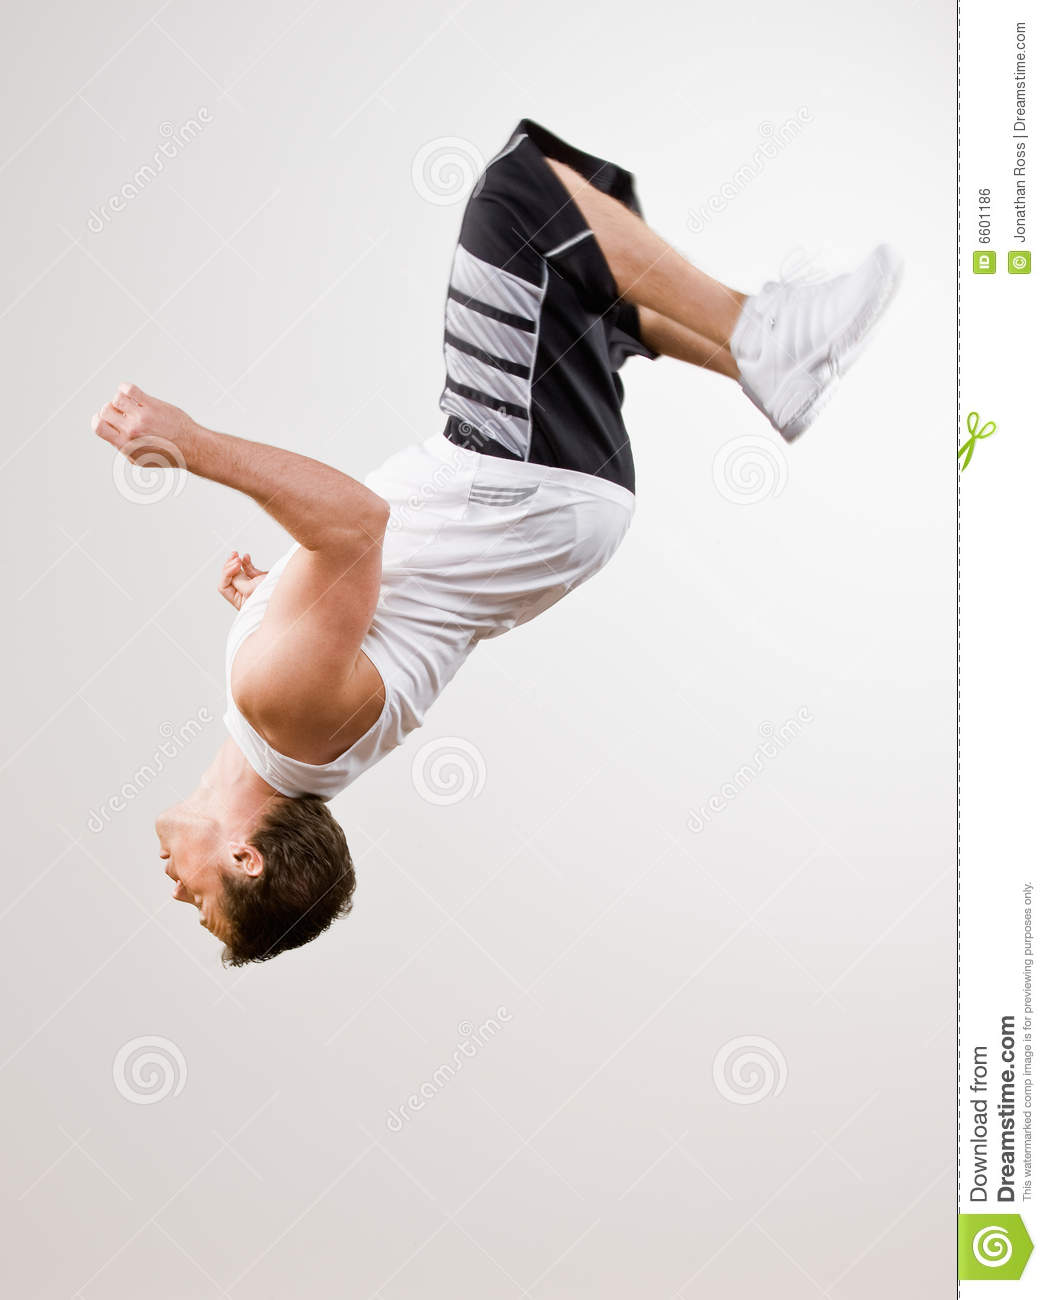 Skilled Athlete Doing Somersault In Mid Air Royalty Free Stock Image